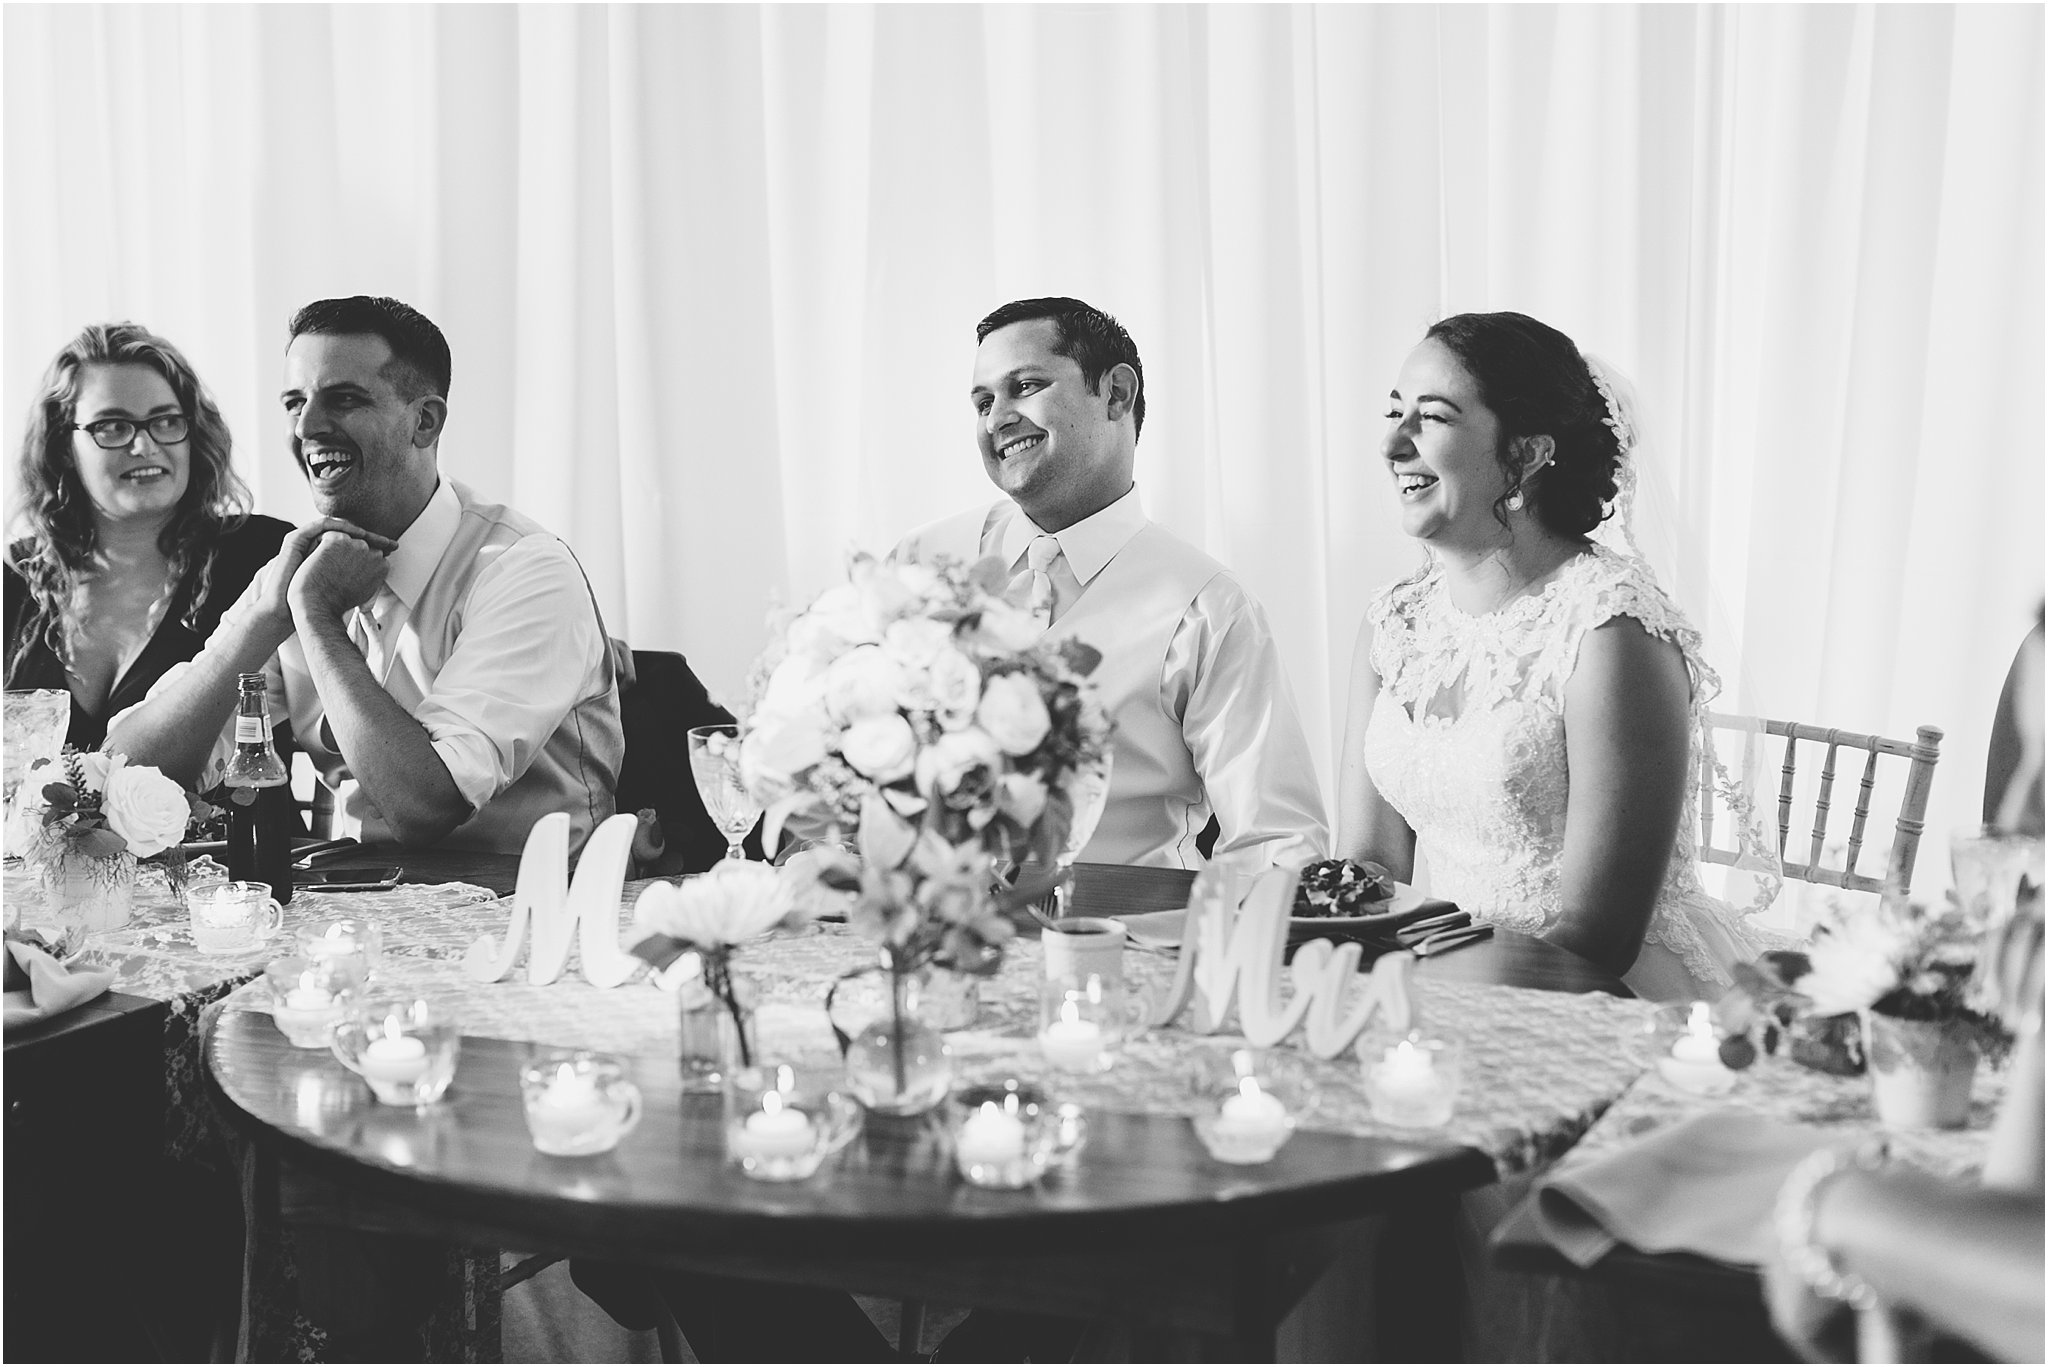 jessica_ryan_photography_virginia_wedding_photographer_wedding_hurricane_norfolk_botanical_gardens_hurricane_matthew_wedding_3635